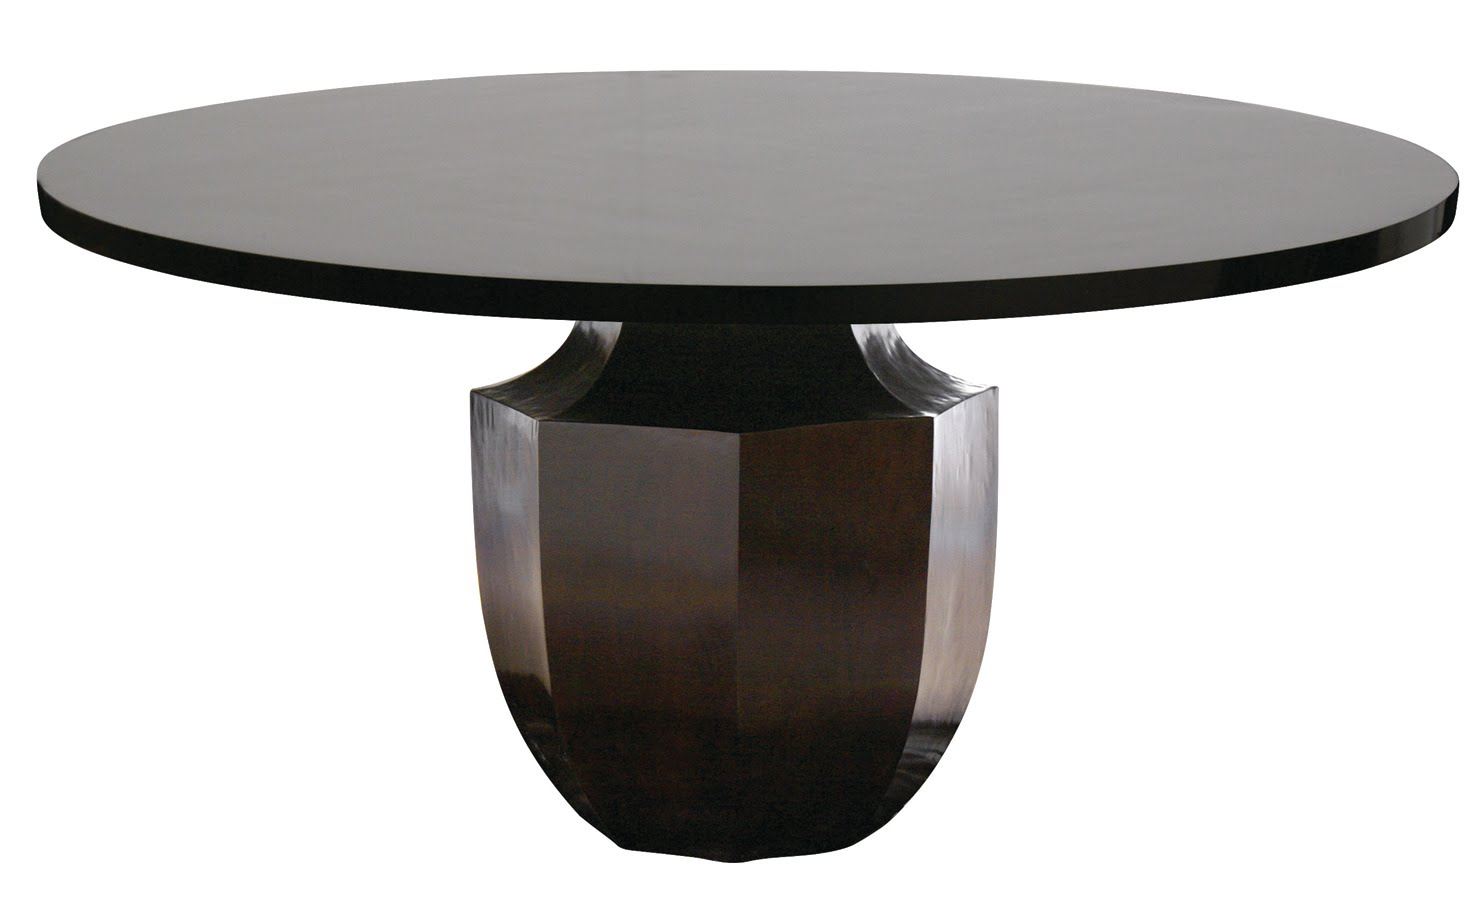 Prairie perch my top 5 round dining tables for Round dining table